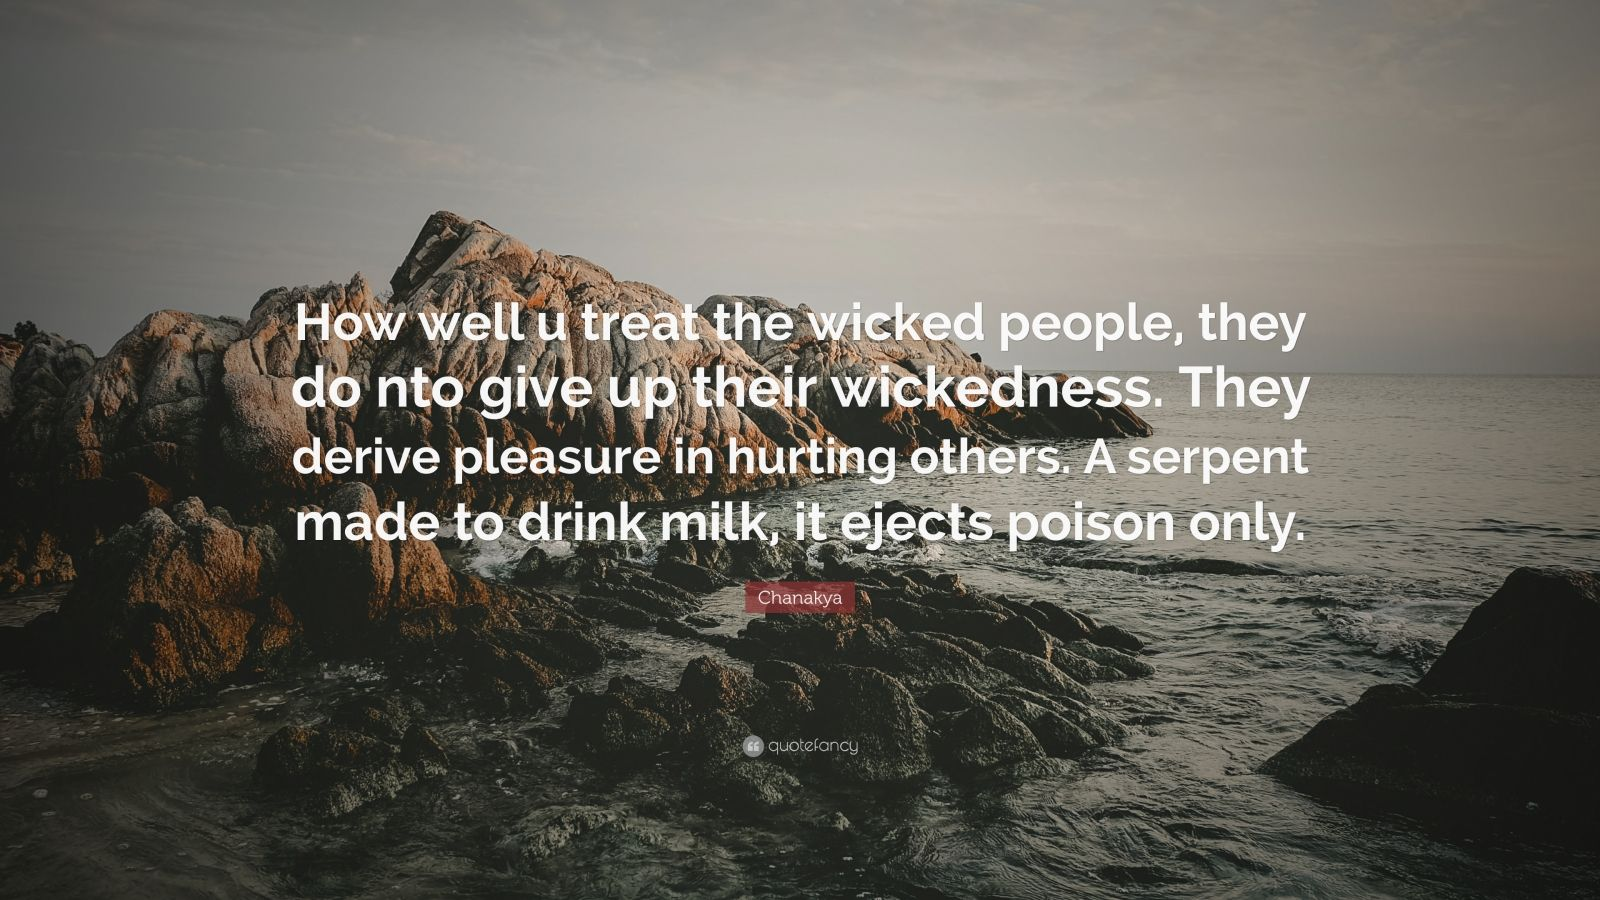 """Chanakya Quote: """"How well u treat the wicked people, they do nto give up their wickedness. They derive pleasure in hurting others. A serpent made to drink milk, it ejects poison only."""""""